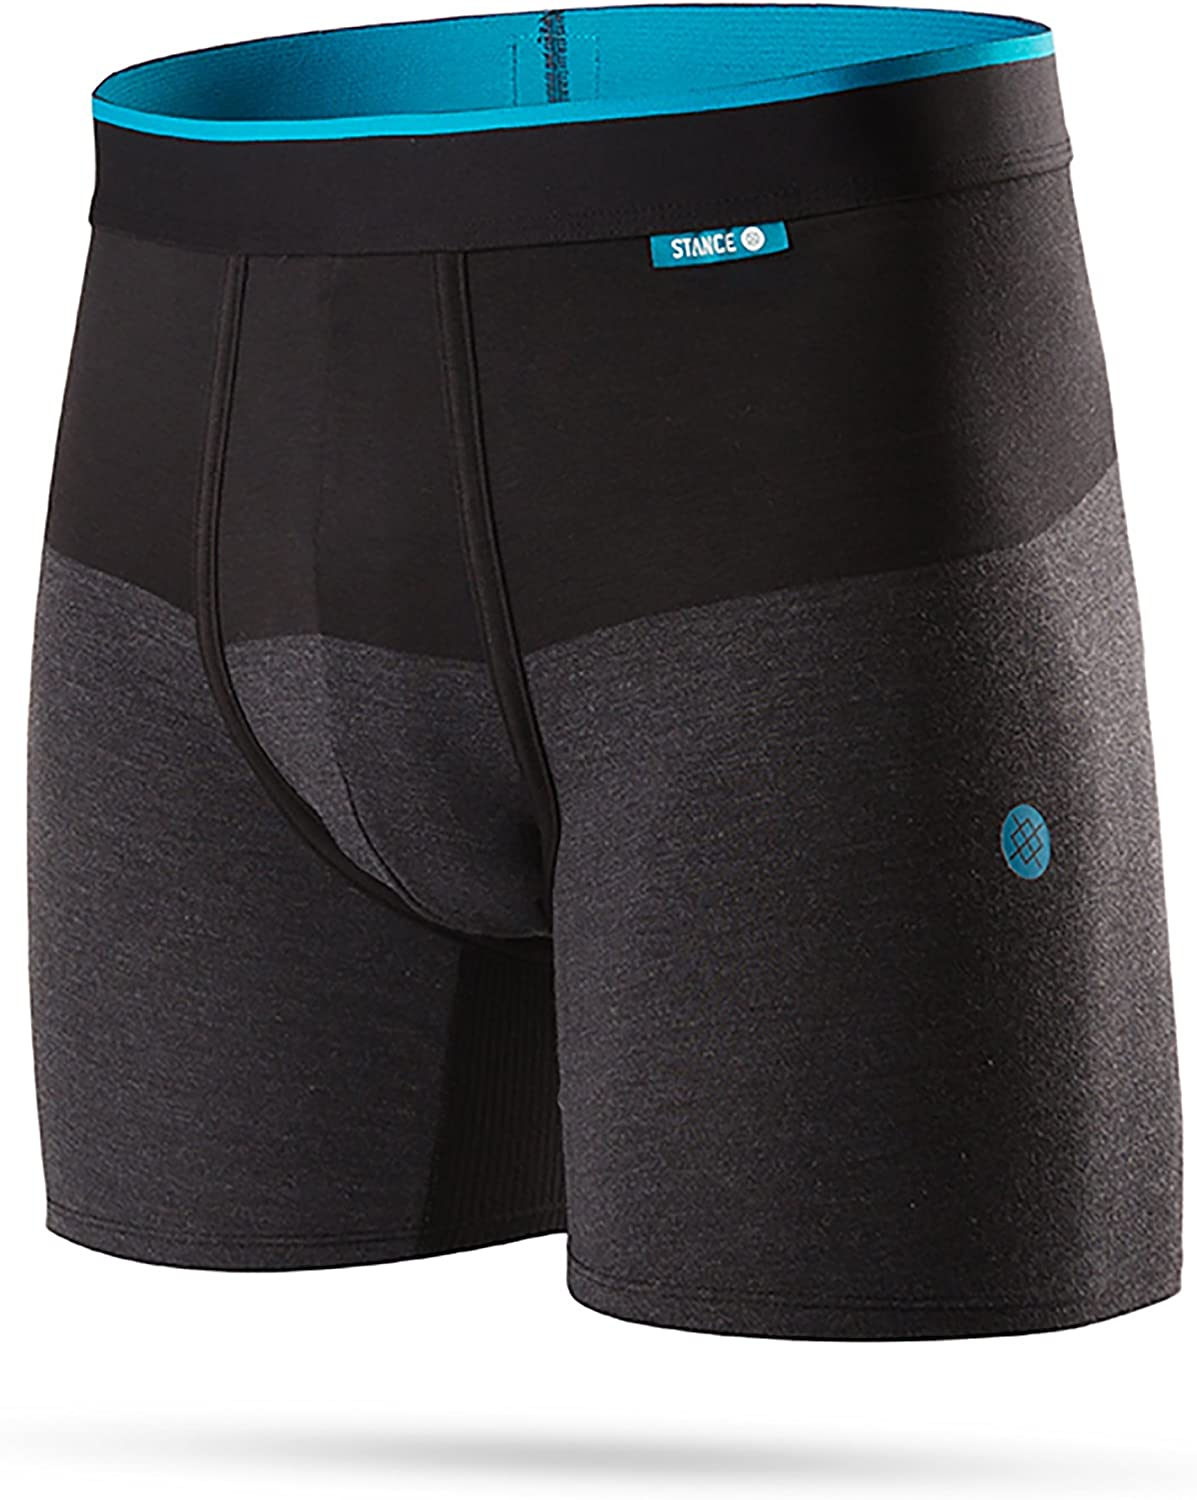 Stance Mens Cartridge Underwear